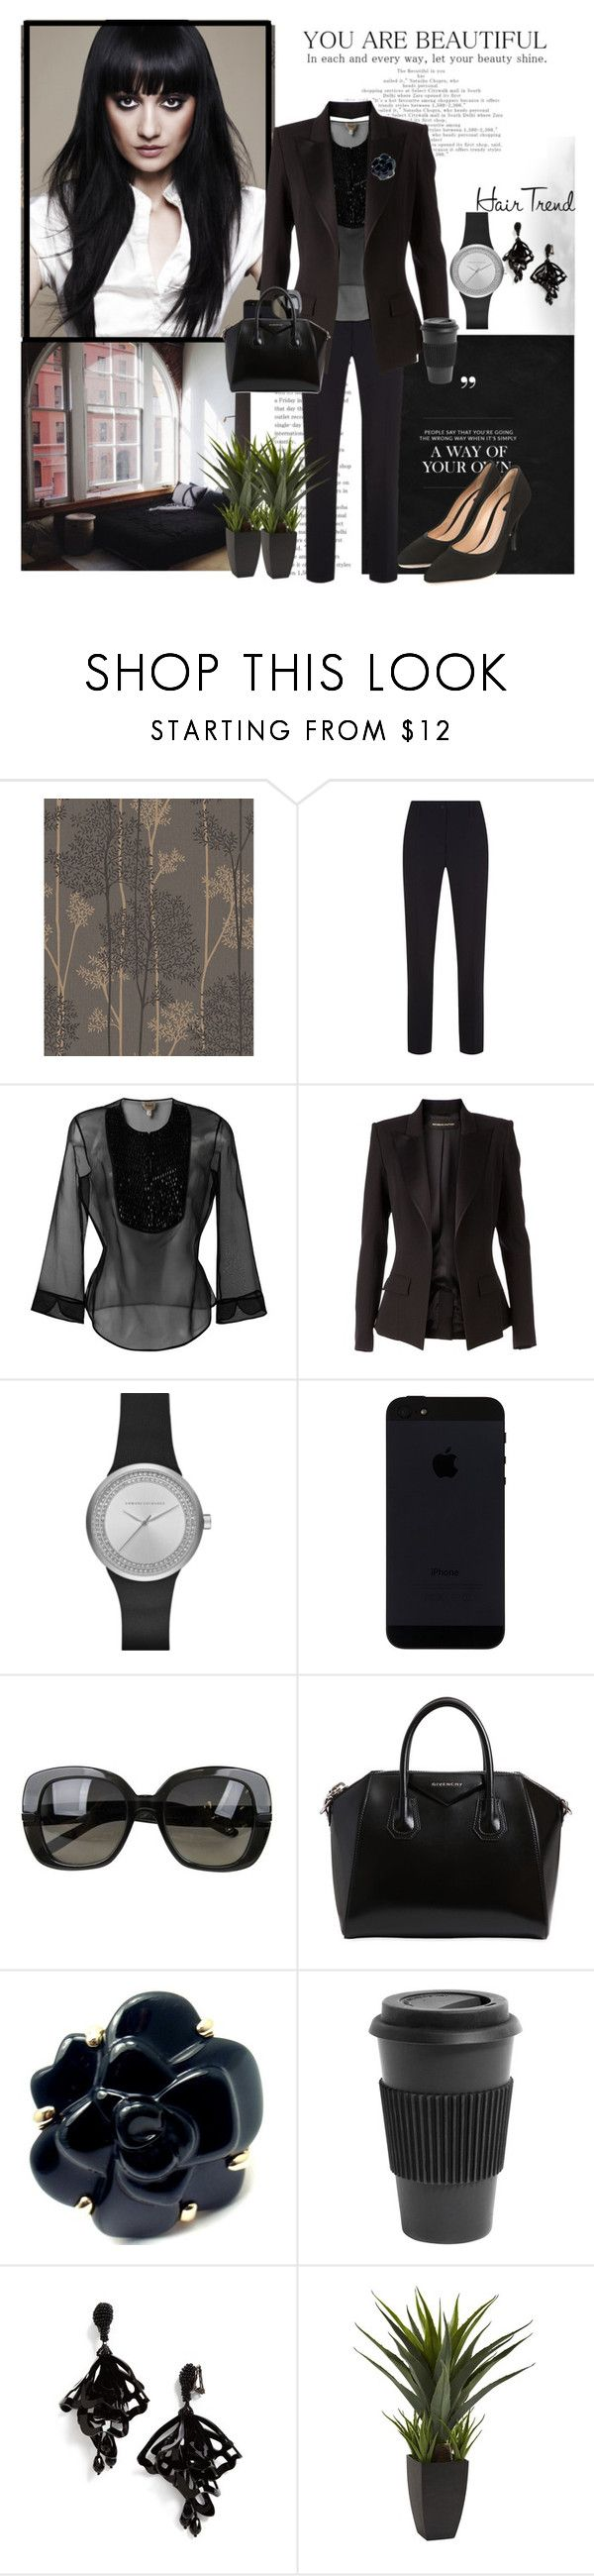 """Matchy-match hair trend"" by krystalkm-7 ❤ liked on Polyvore featuring Graham & Brown, Balmain, Armani Collezioni, Alexandre Vauthier, Armani Exchange, Bottega Veneta, Givenchy, Chanel, Homage and Oscar de la Renta"